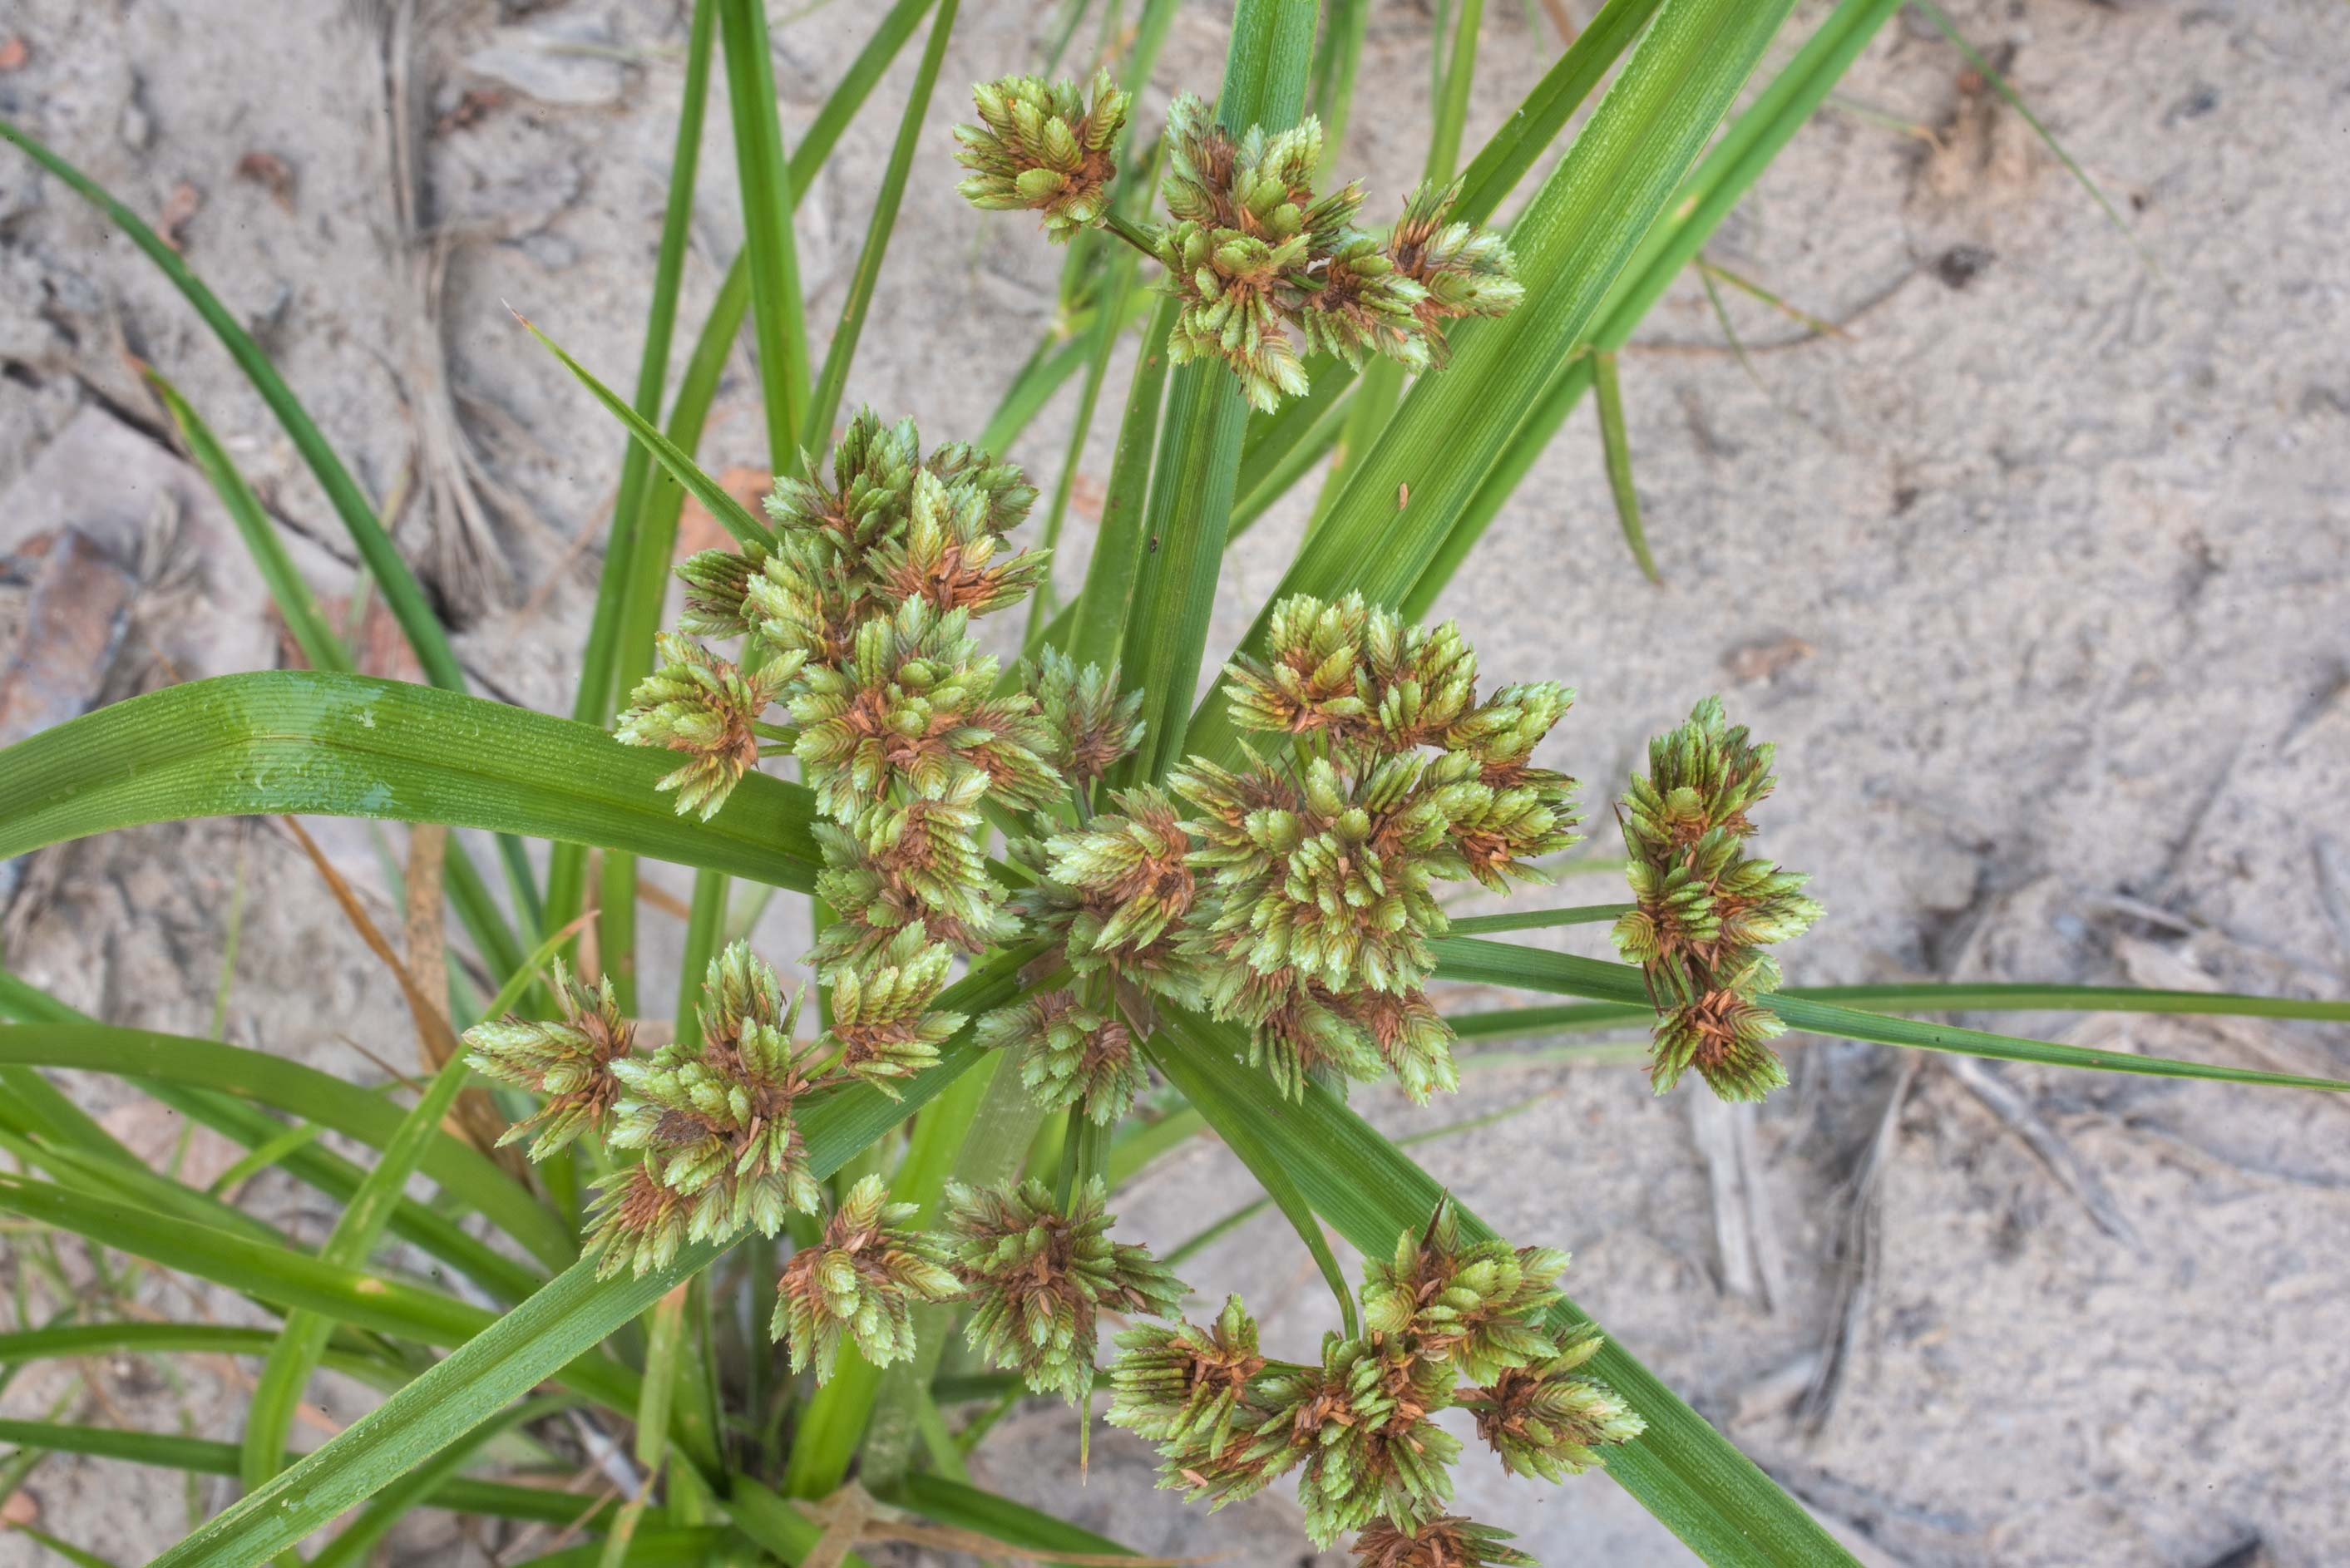 Seeds of bunchy, or many-spiked sedge (Cyperus...Creek Park. College Station, Texas